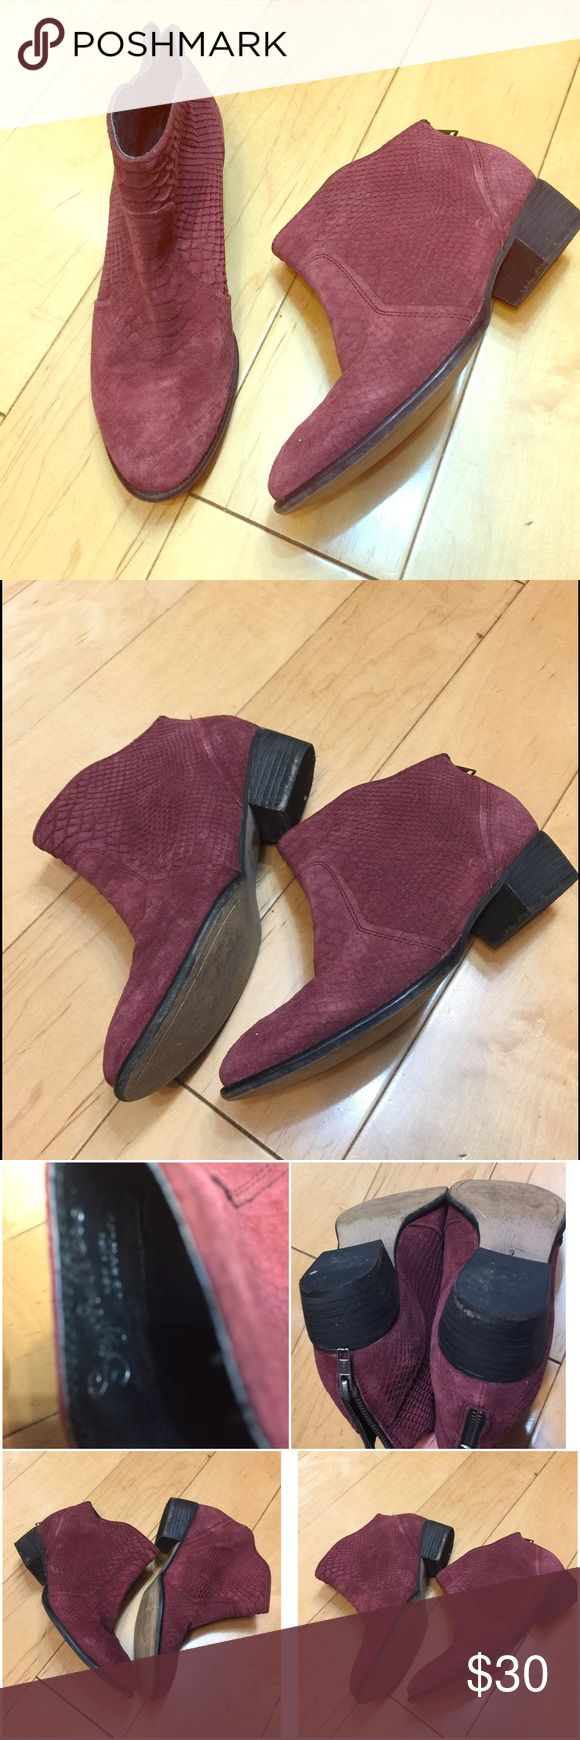 Seychelles boots maroon 9 Seychelles boots maroon color, snakeskin pattern. Real Leather. Size 9. Zippers at the back. Very comfortable! Barely used in EUC Seychelles Shoes Ankle Boots & Booties